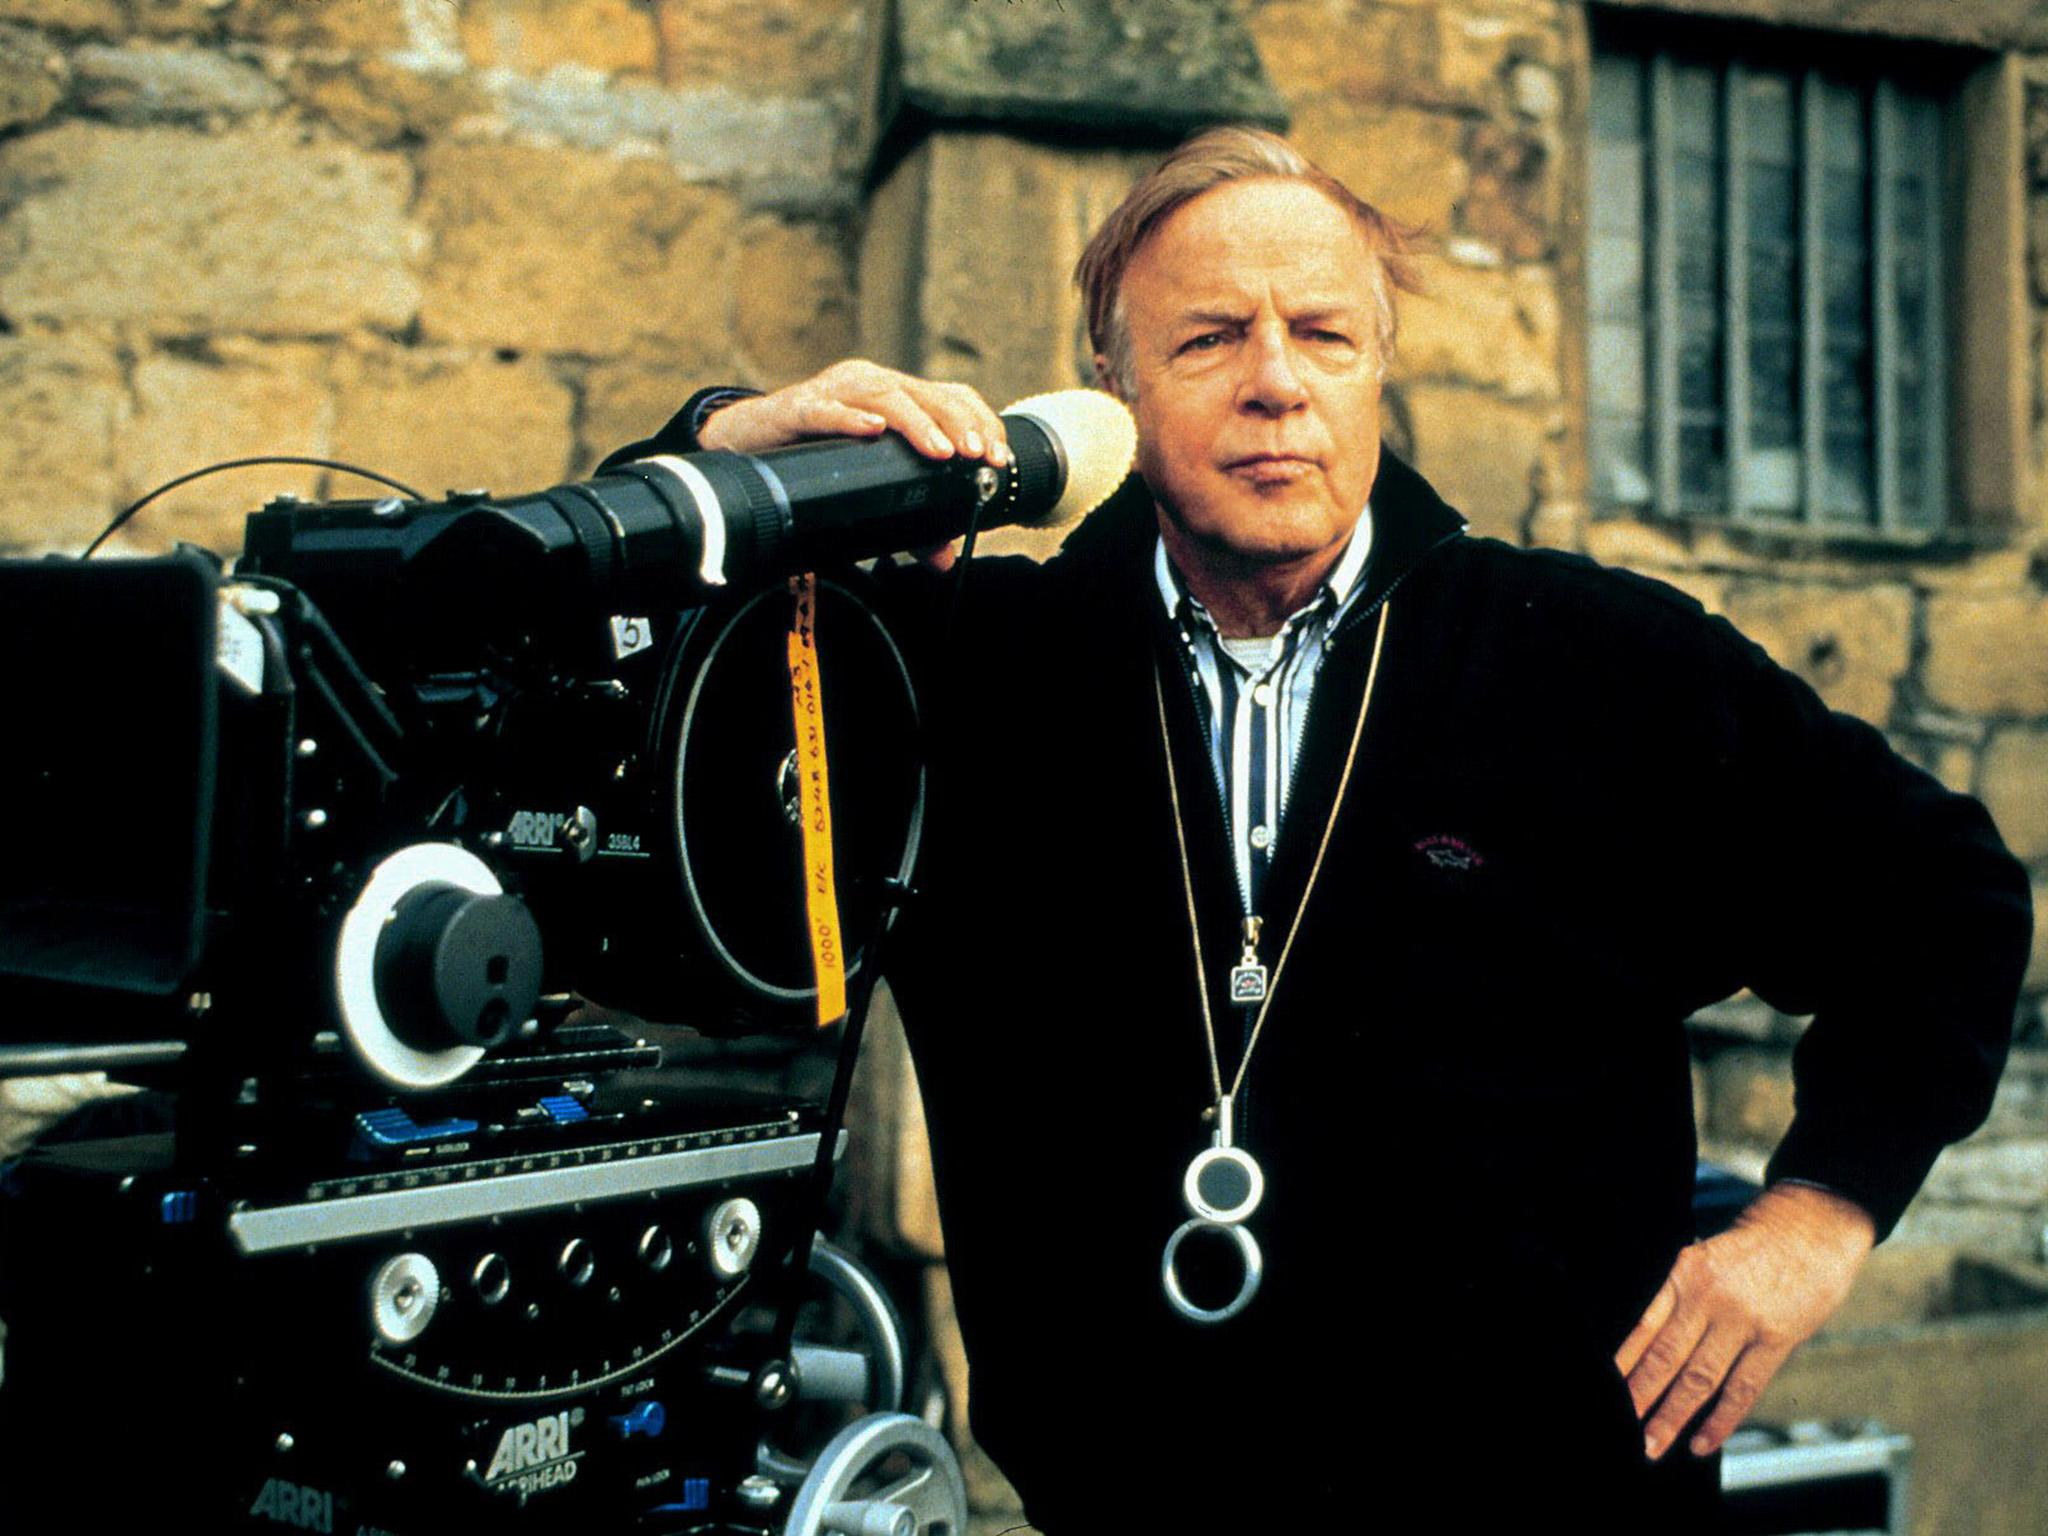 Franco Zeffirelli: Film and opera director who revelled in the lavish and theatrical